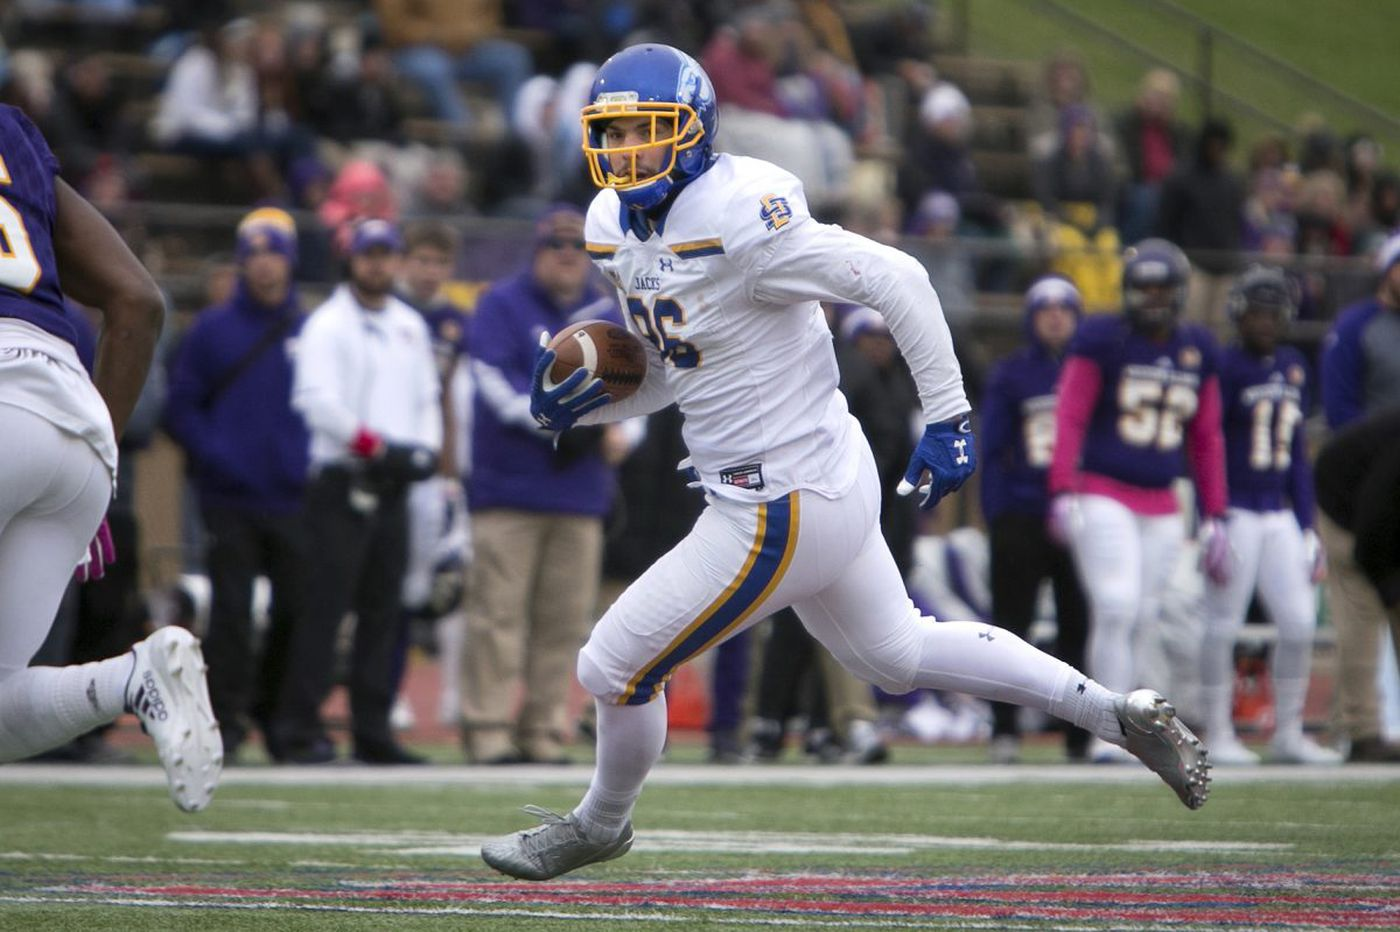 Eagles draft Dallas Goedert out of South Dakota State in second round of NFL draft